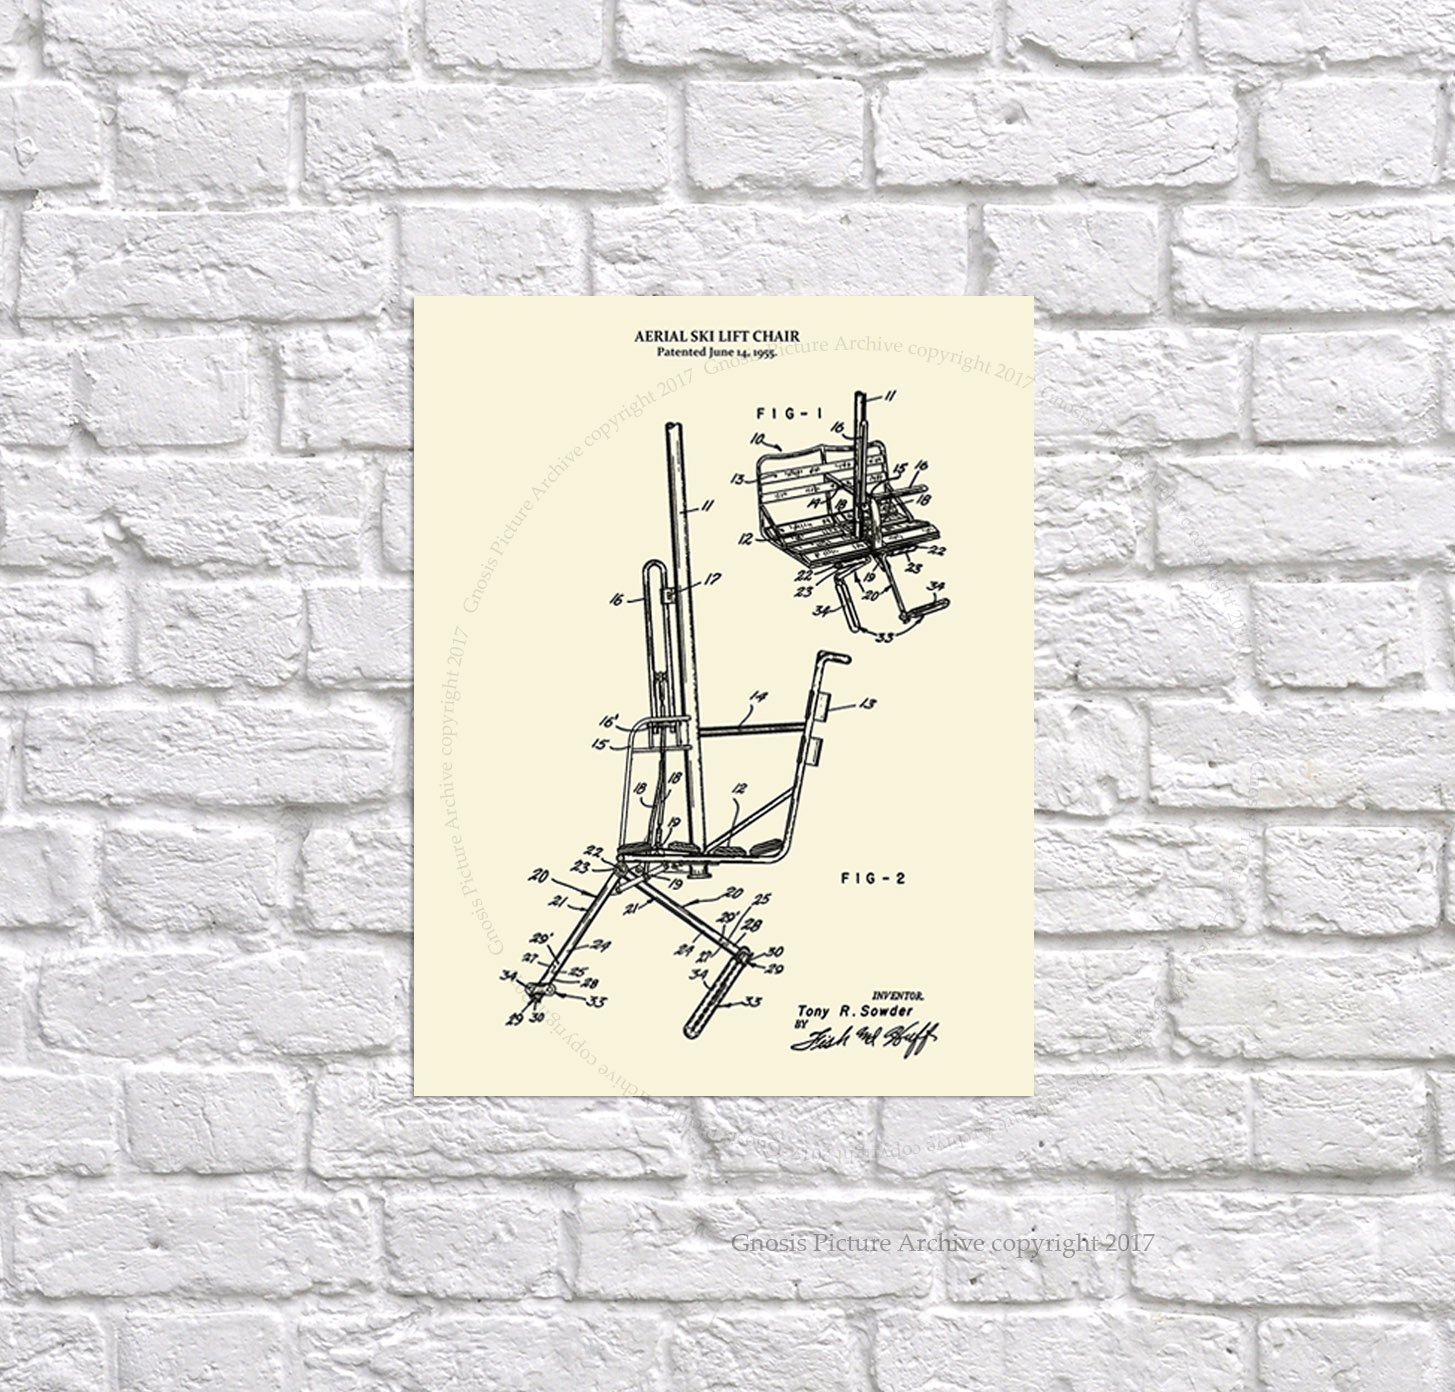 Ski Decorations for Home Set of 6 Unframed Skiing Wall Art Prints in Cream Color Patents/_Ski/_Crm6A